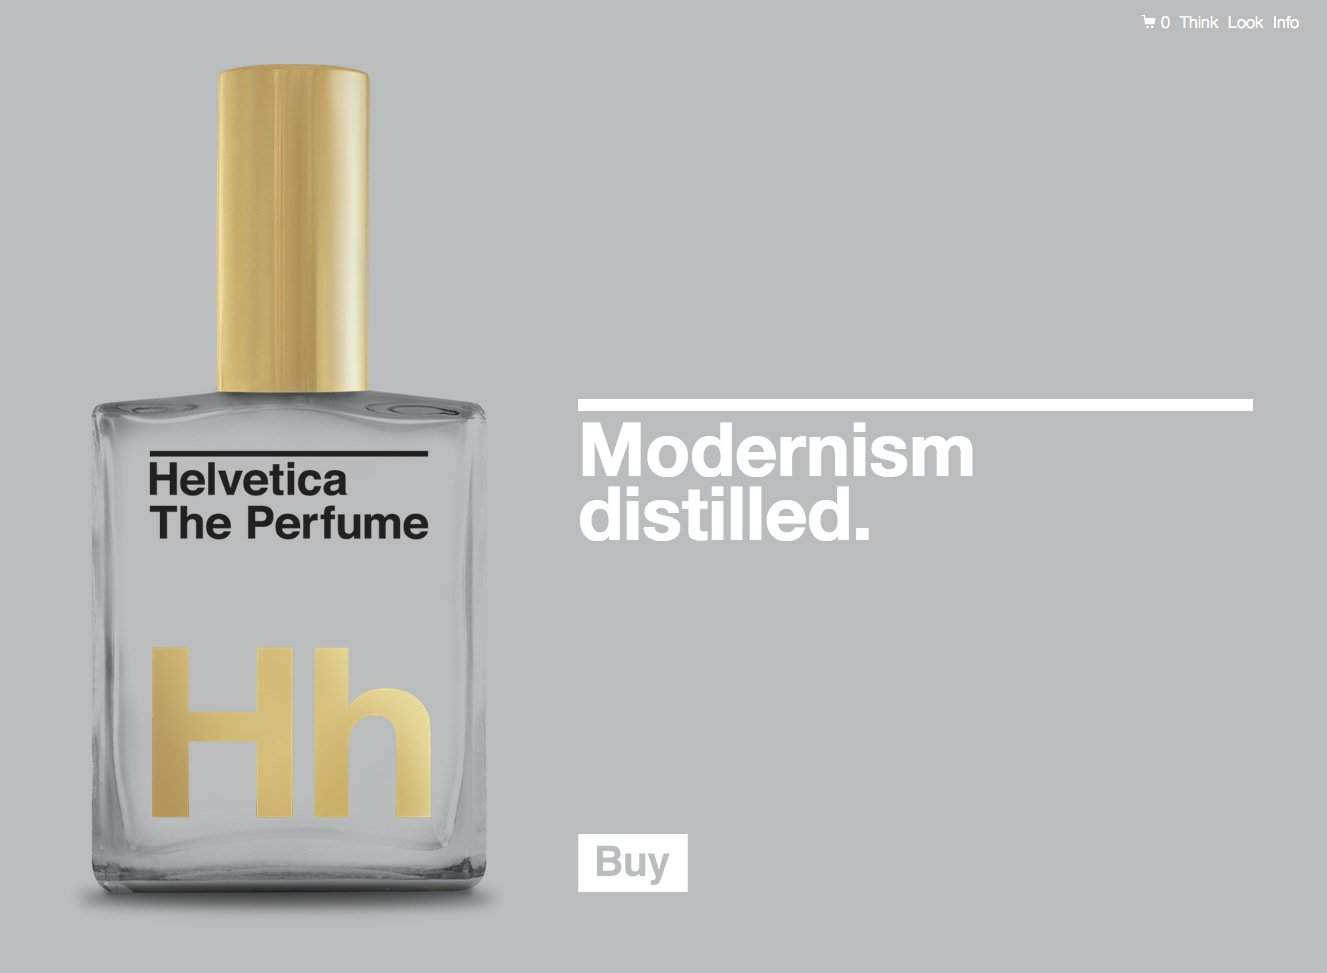 Helvetica The Perfume: The Scent of Nothing